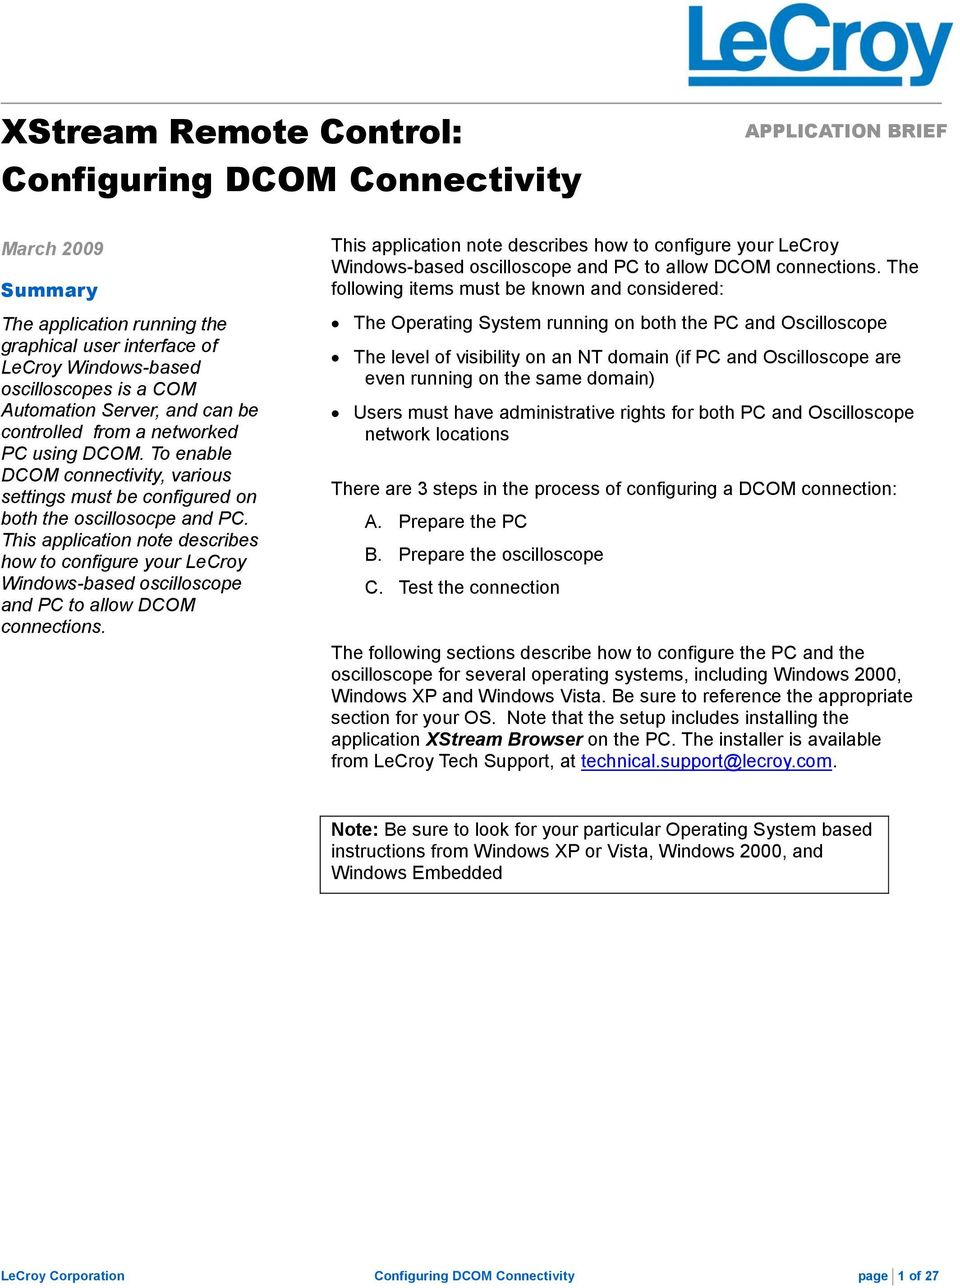 This application note describes how to configure your LeCroy Windows-based oscilloscope and PC to allow DCOM connections.